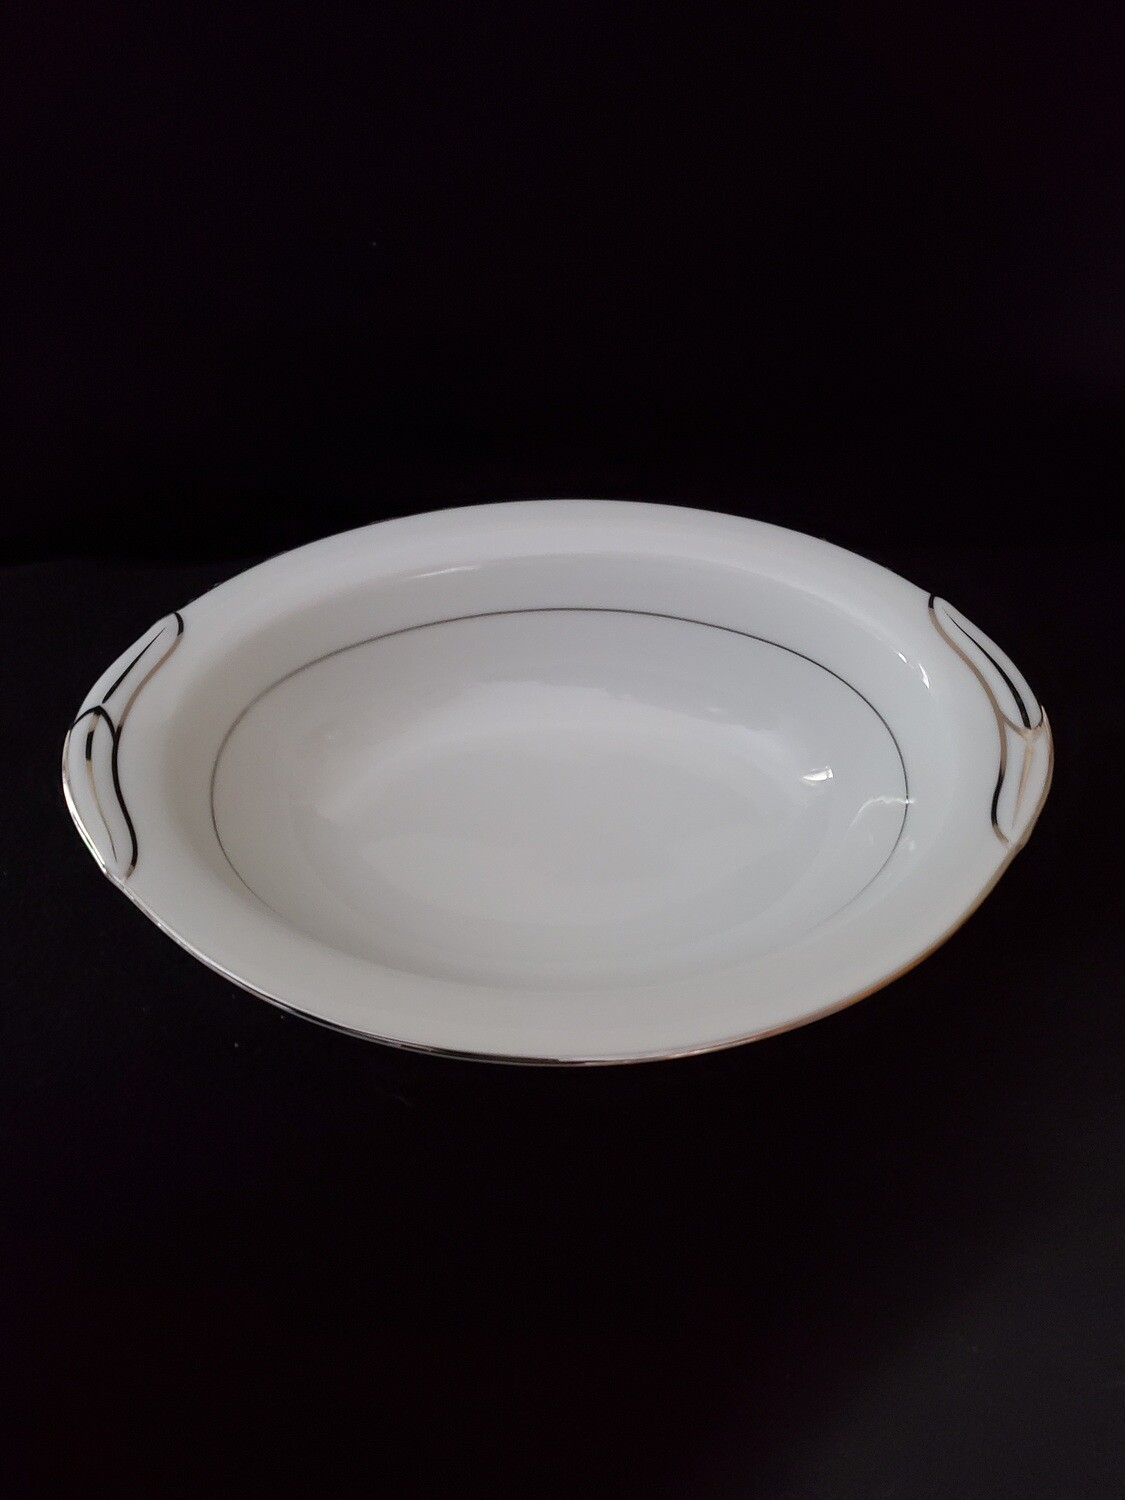 "Noritake China, Oval Vegetable Bowl 10 5/8"" , With Platinum Trim, Pattern 5931 Derry"